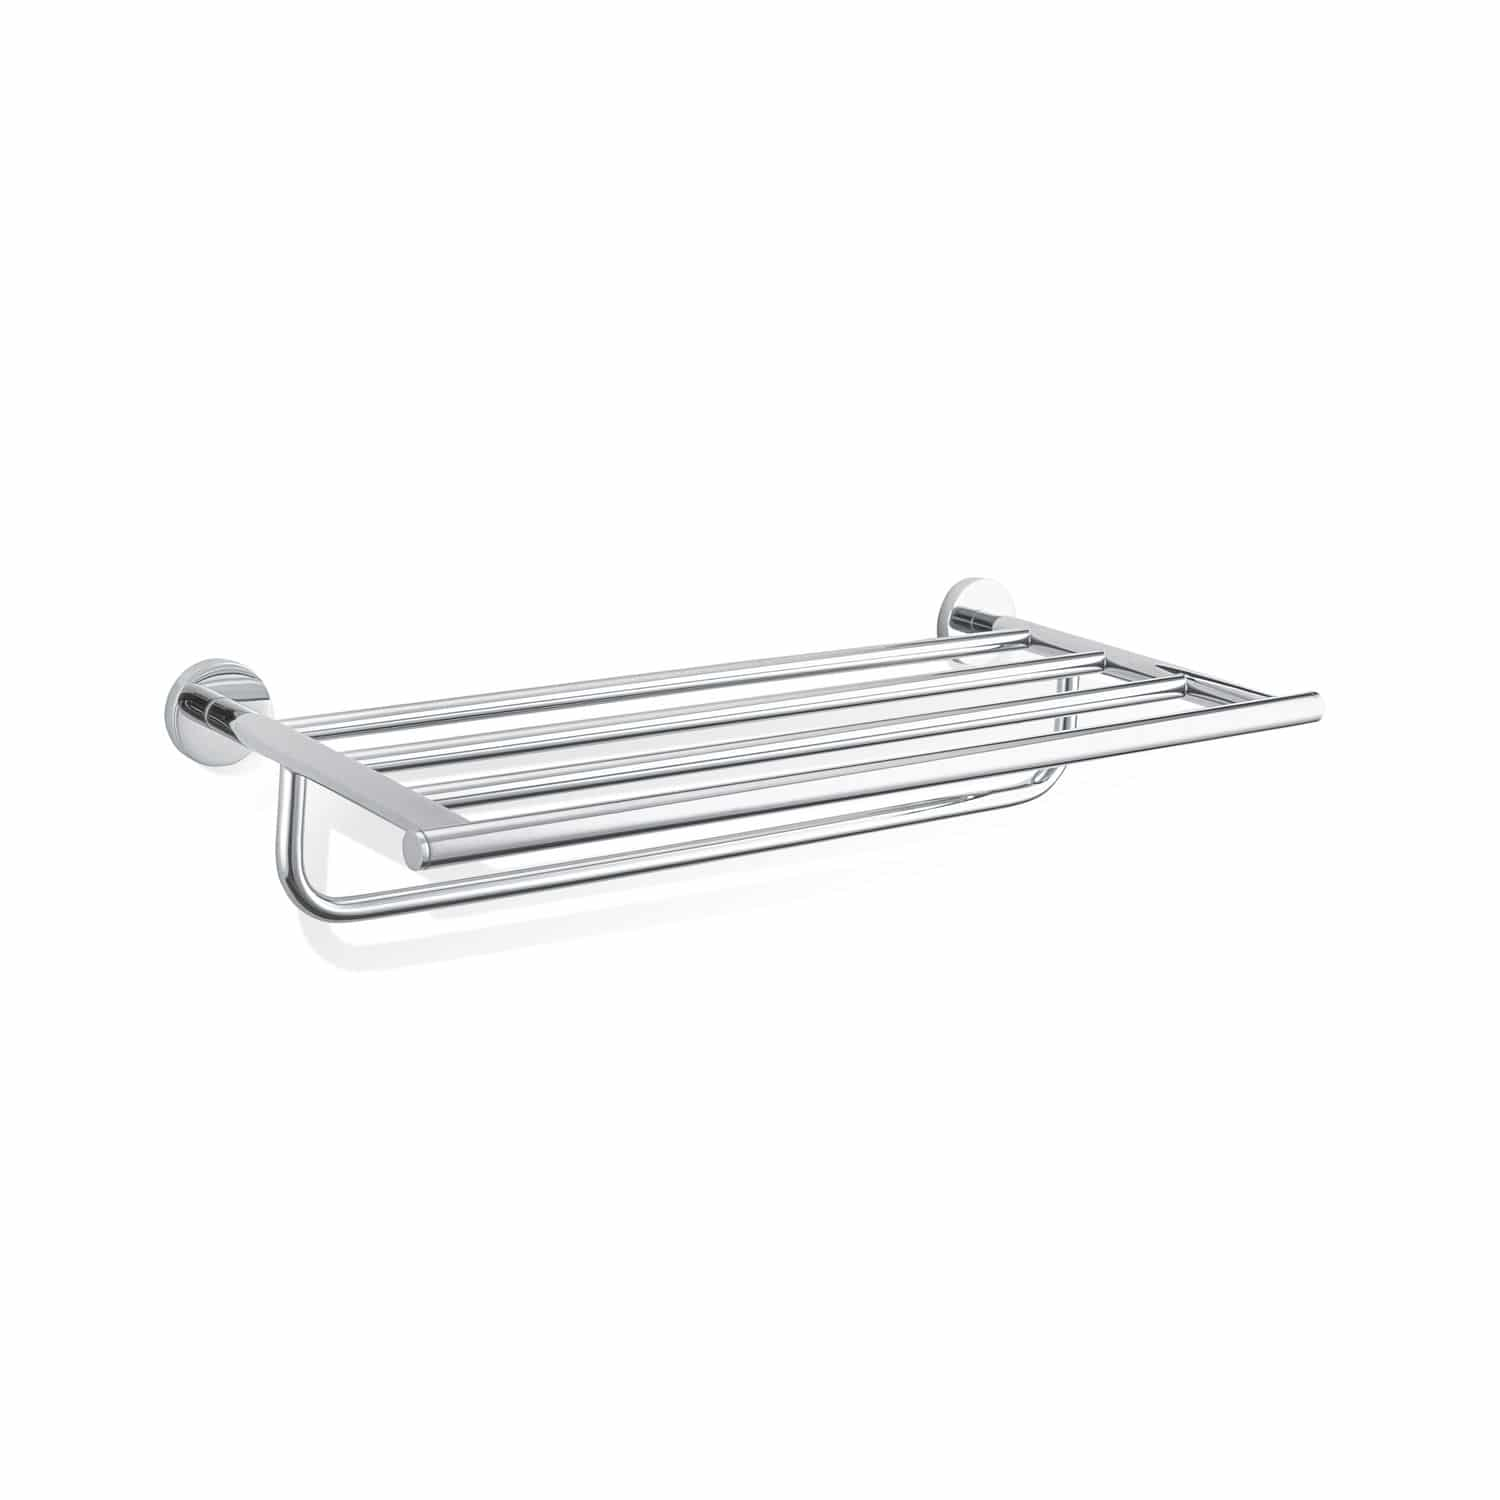 Wall-mounted shelf / contemporary / chrome-plated brass / bathroom ...